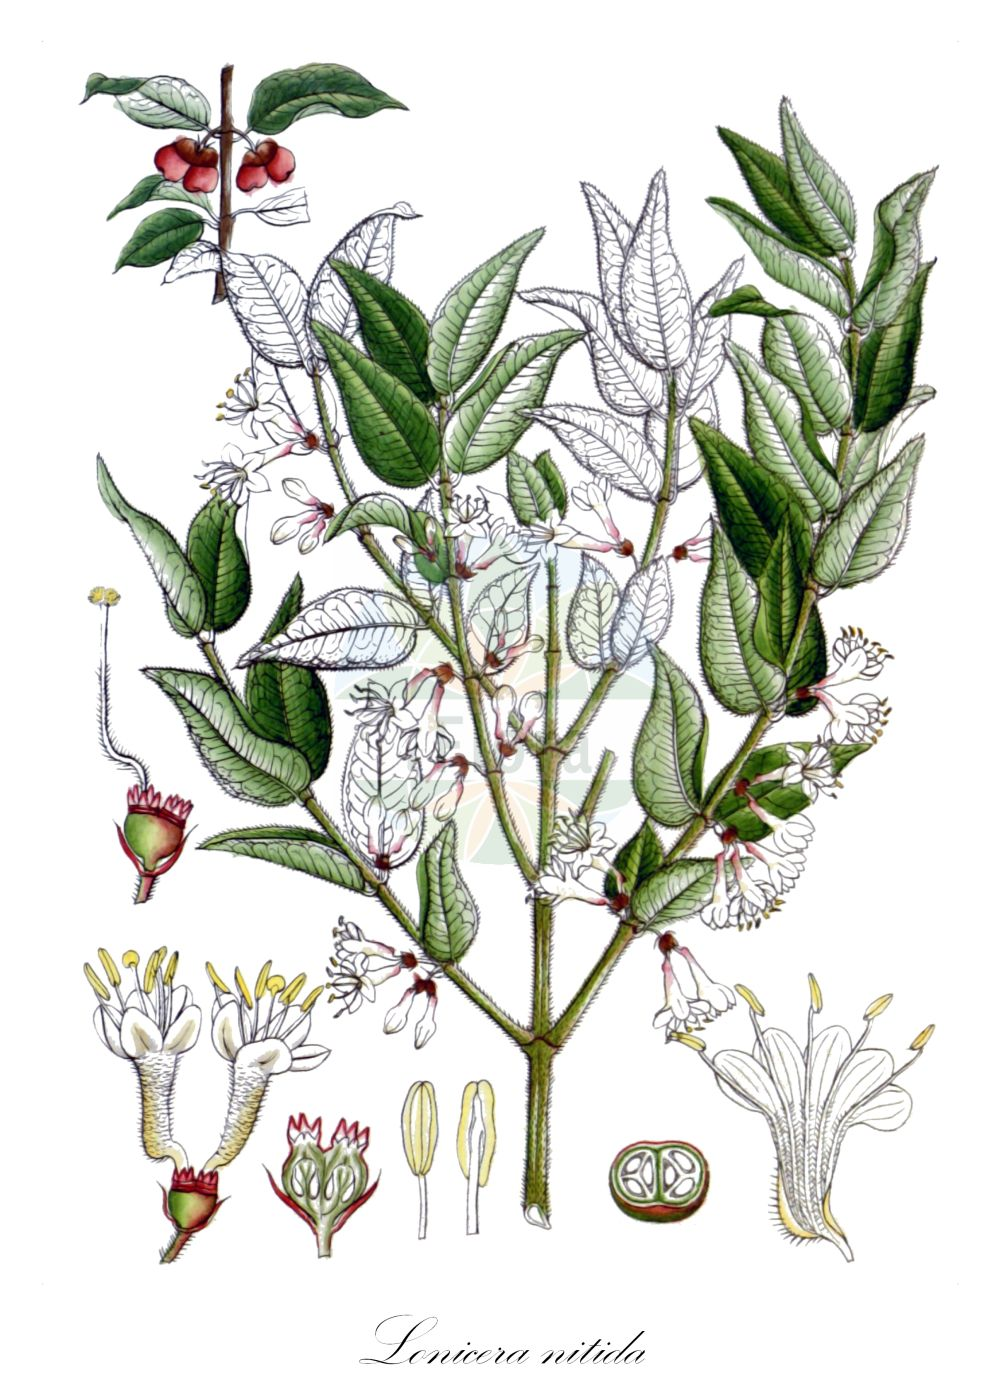 Historische Abbildung von Lonicera nitida. Das Bild zeigt Blatt, Bluete, Frucht und Same. ---- Historical Drawing of Lonicera nitida.The image is showing leaf, flower, fruit and seed.(Lonicera nitida,Lonicera,Heckenkirsche,Honeysuckle,Caprifoliaceae,Geissblattgewaechse,Honeysuckle family,Blatt,Bluete,Frucht,Same,leaf,flower,fruit,seed,Wight (1840-1850))